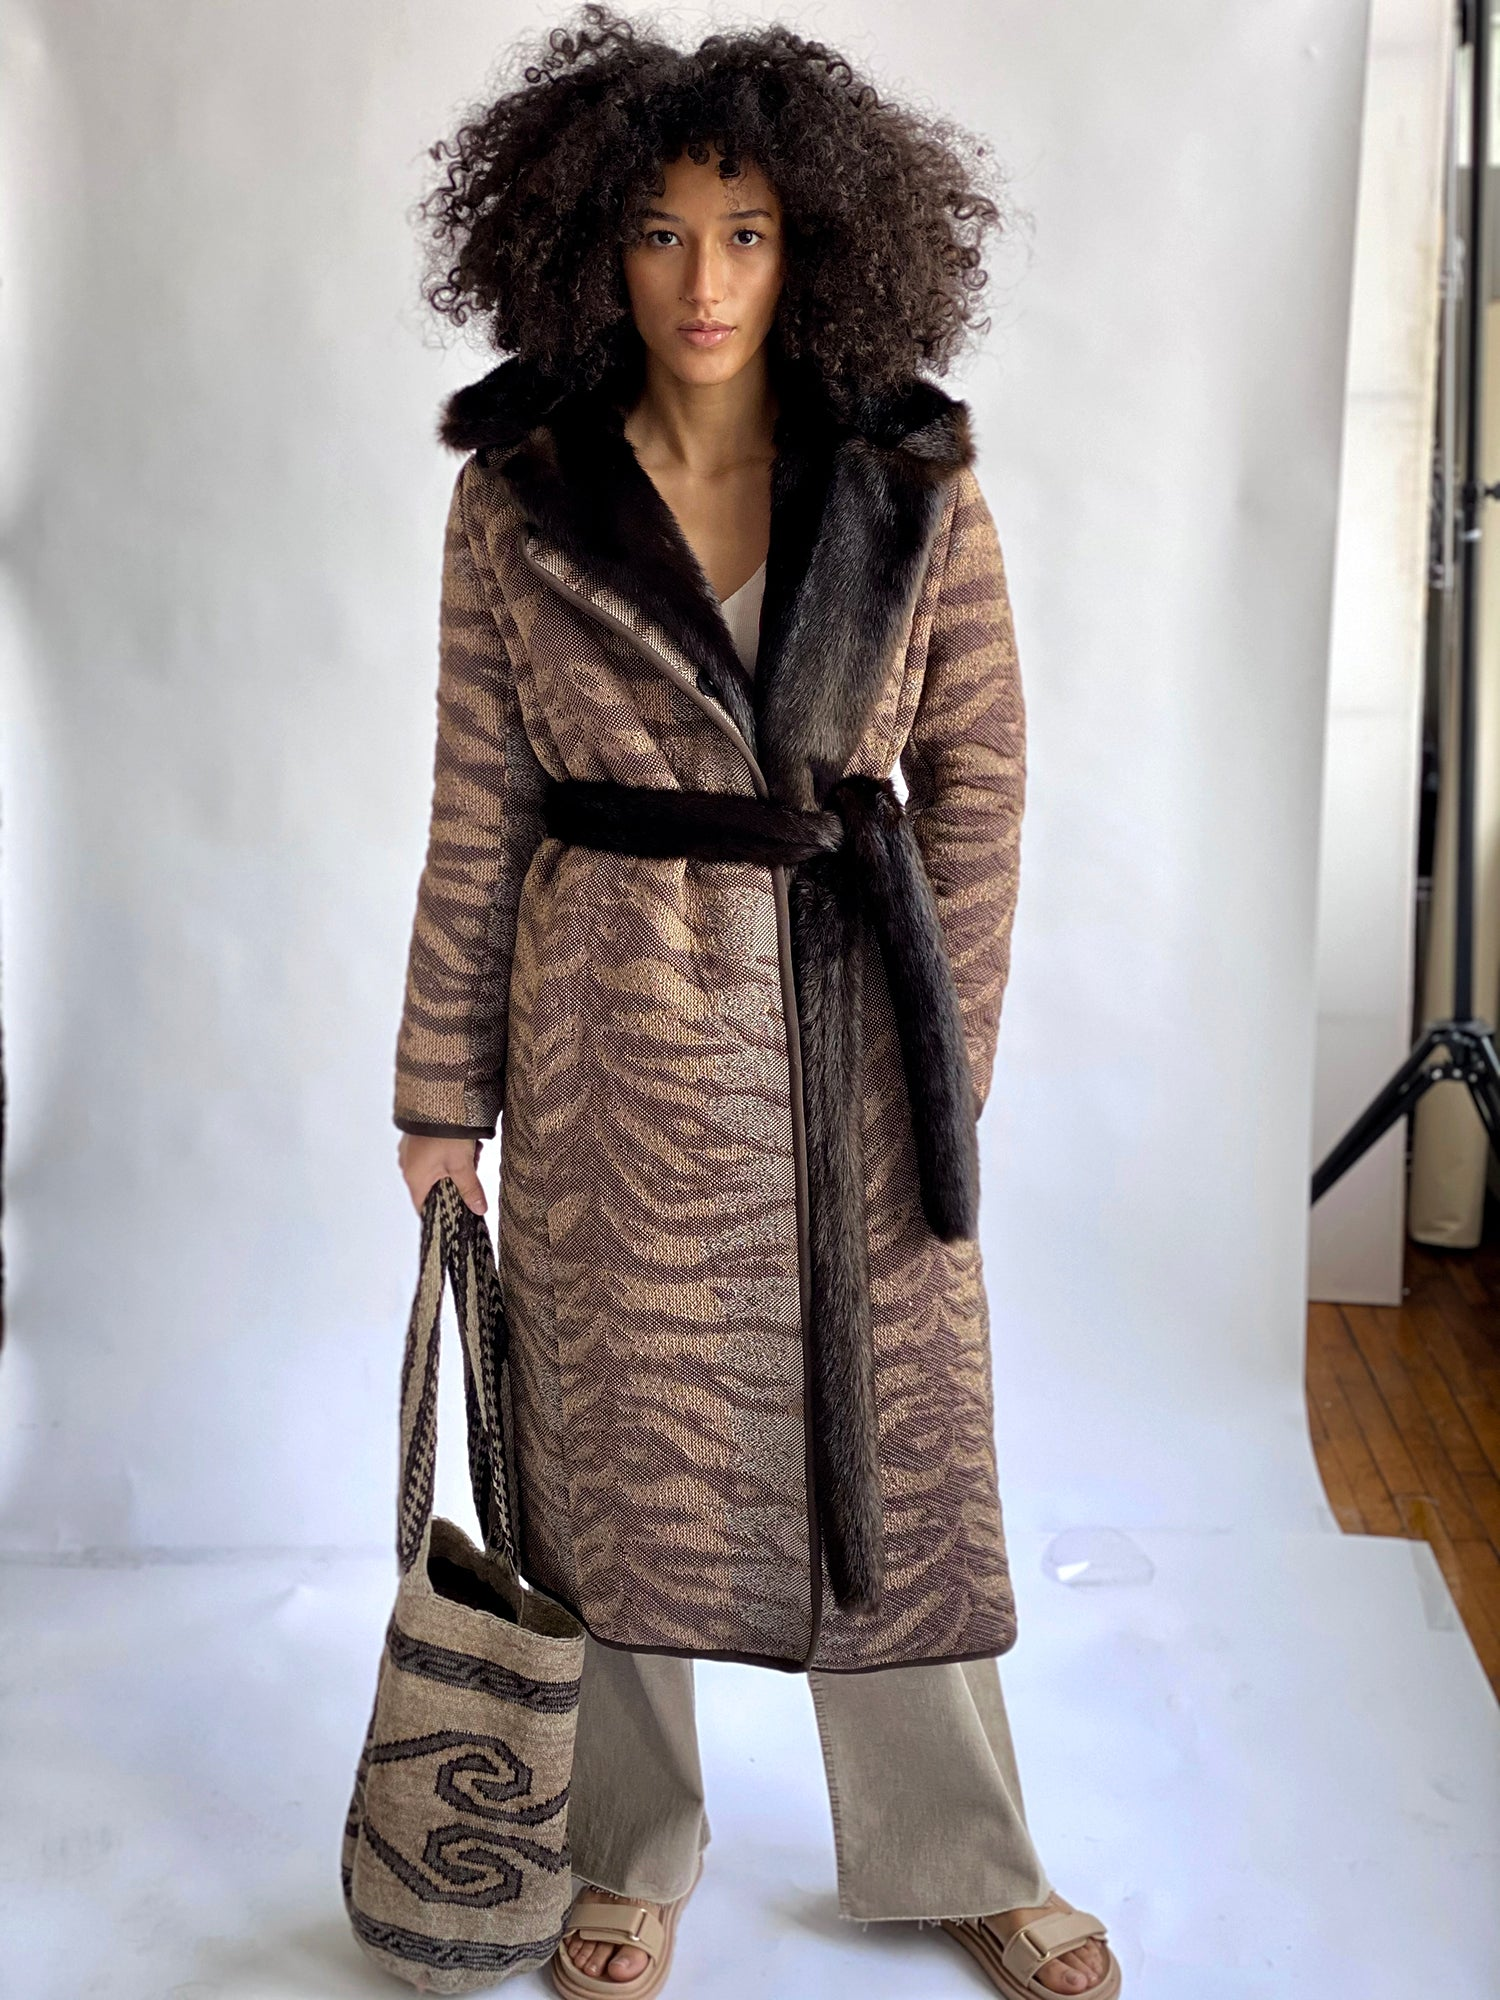 Tiger Print Seasonless Knit Coat